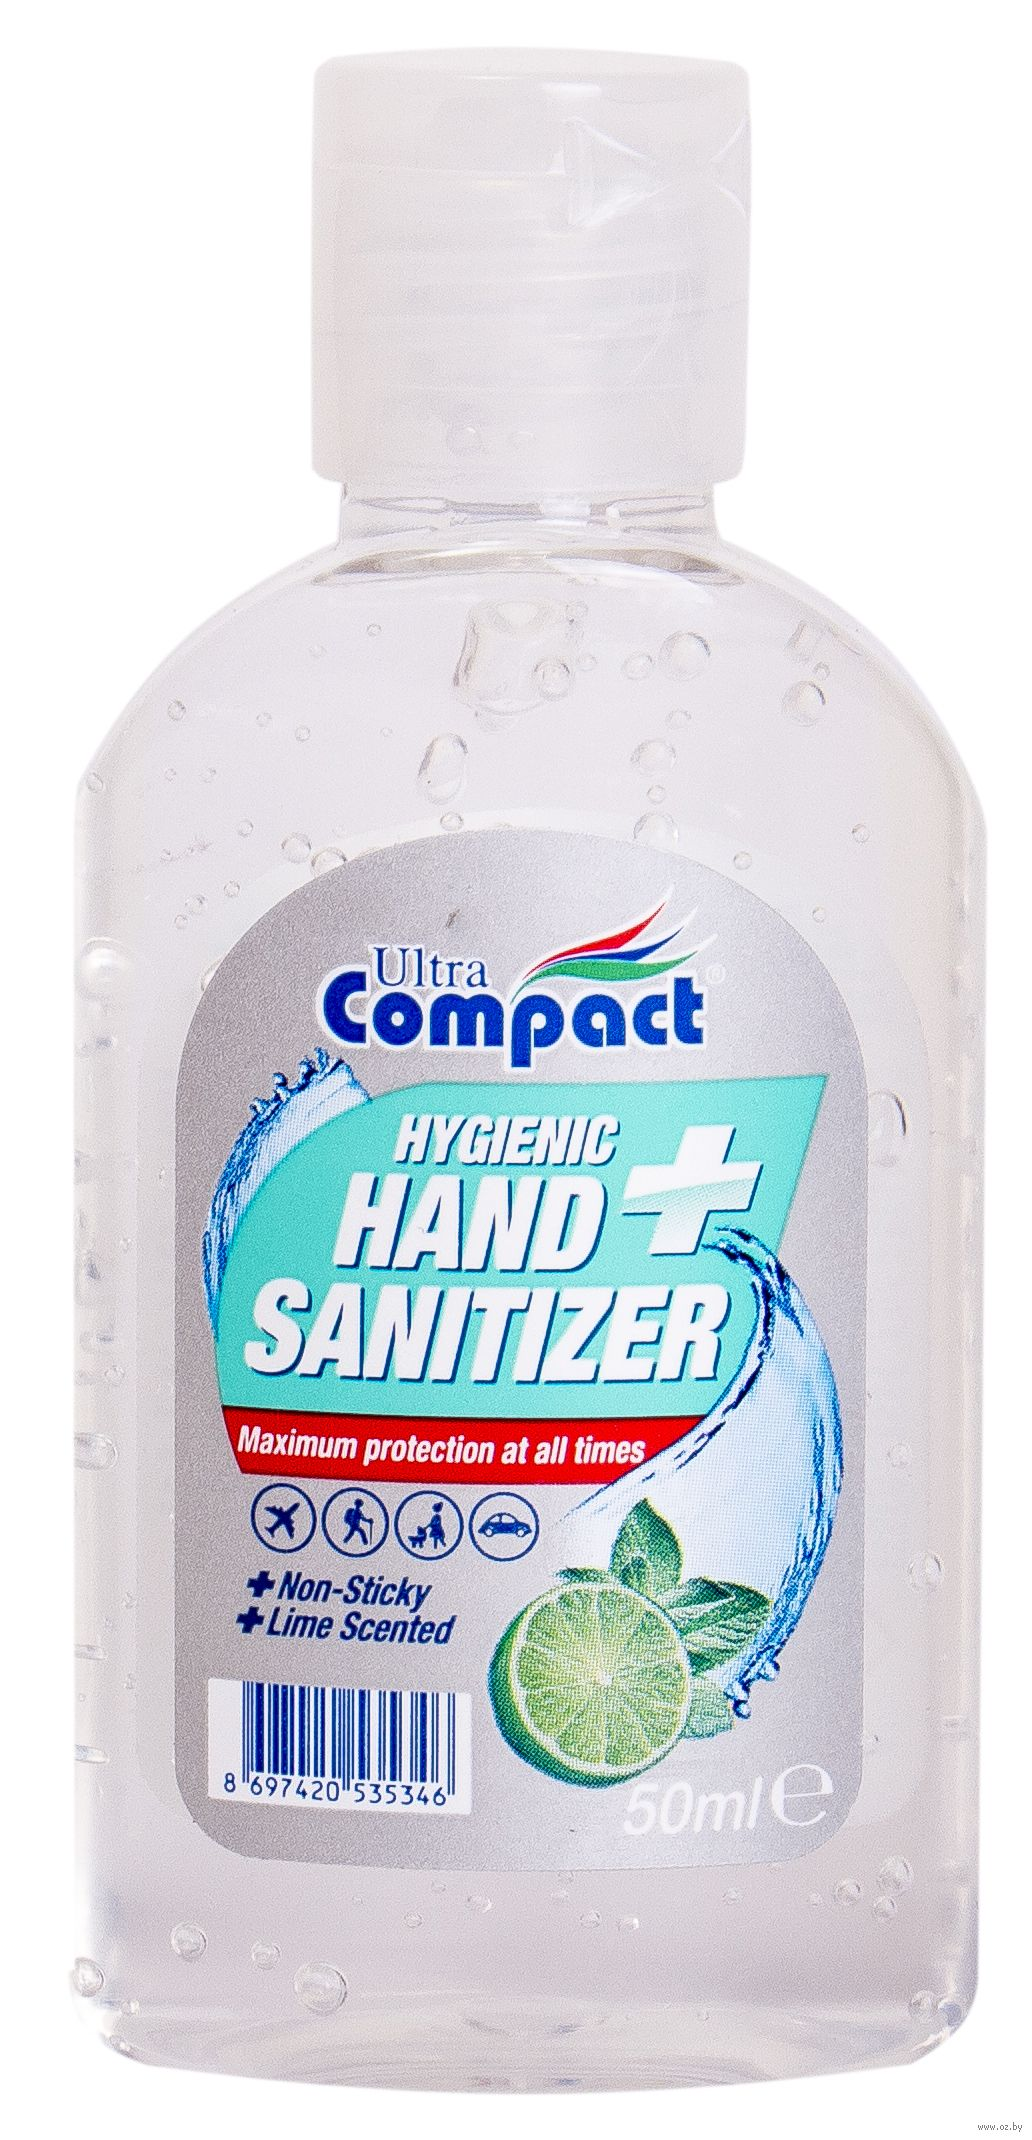 Shop Hand Sanitizer For Everyday Great Value Ntuc Fairprice